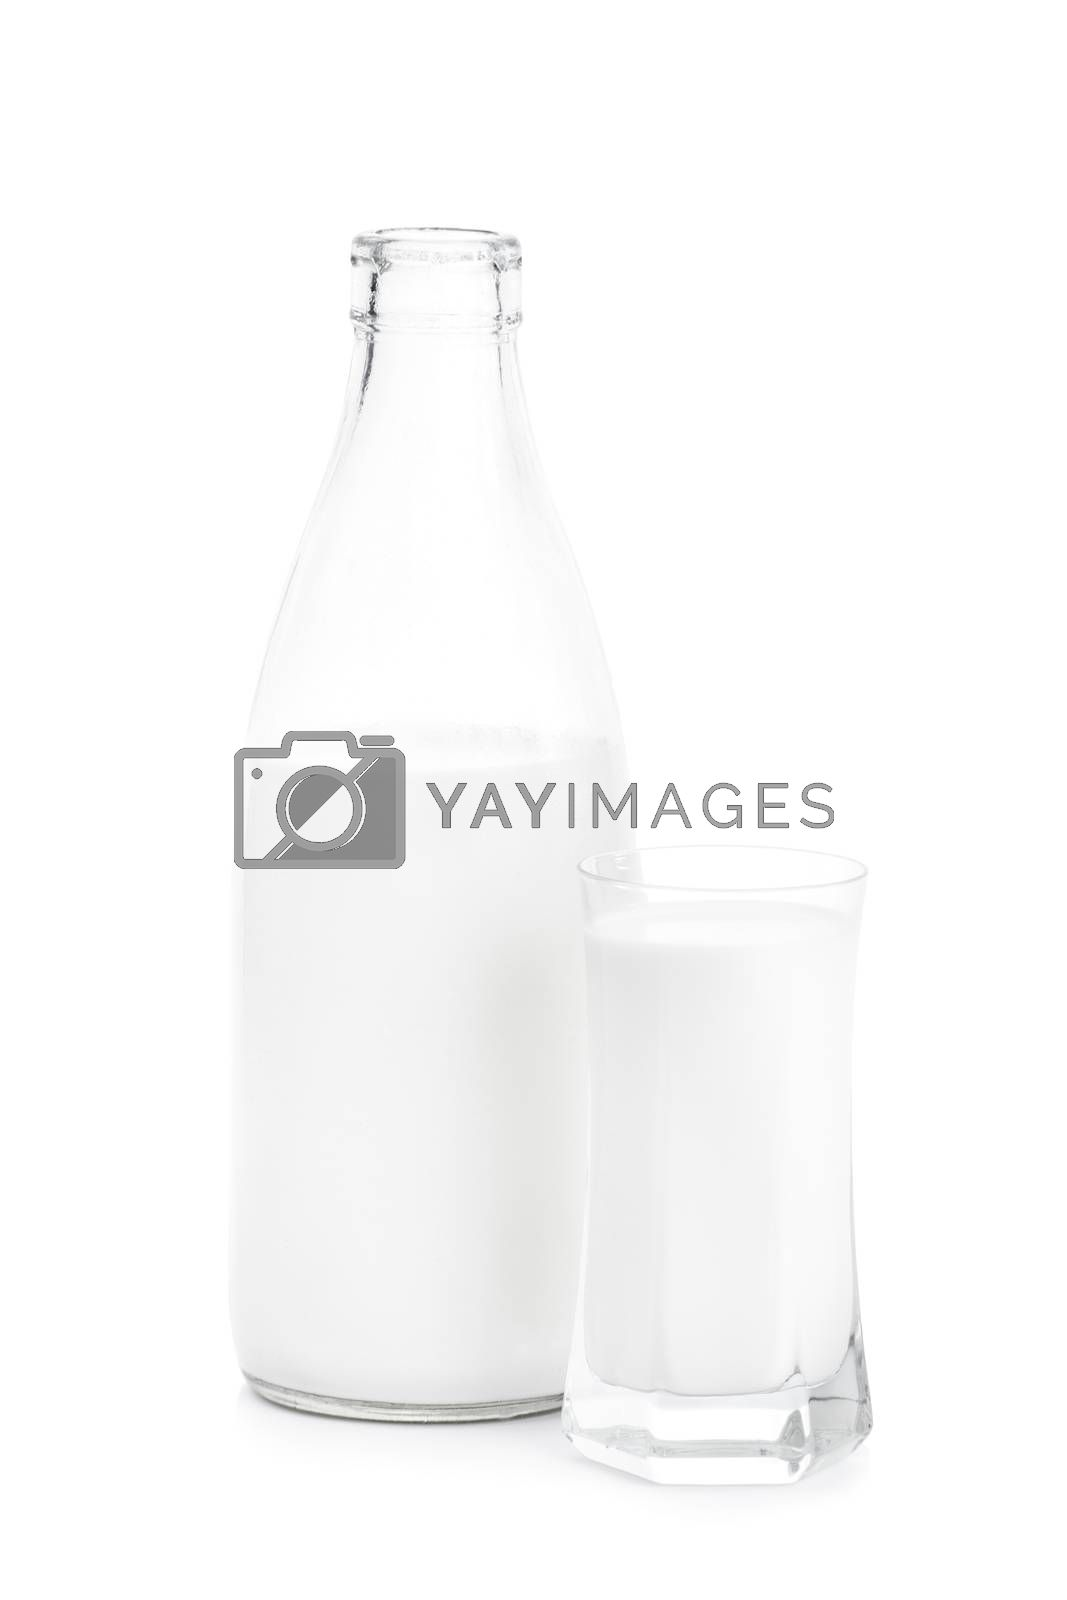 Bottle and a glass of milk, isolated on white background.